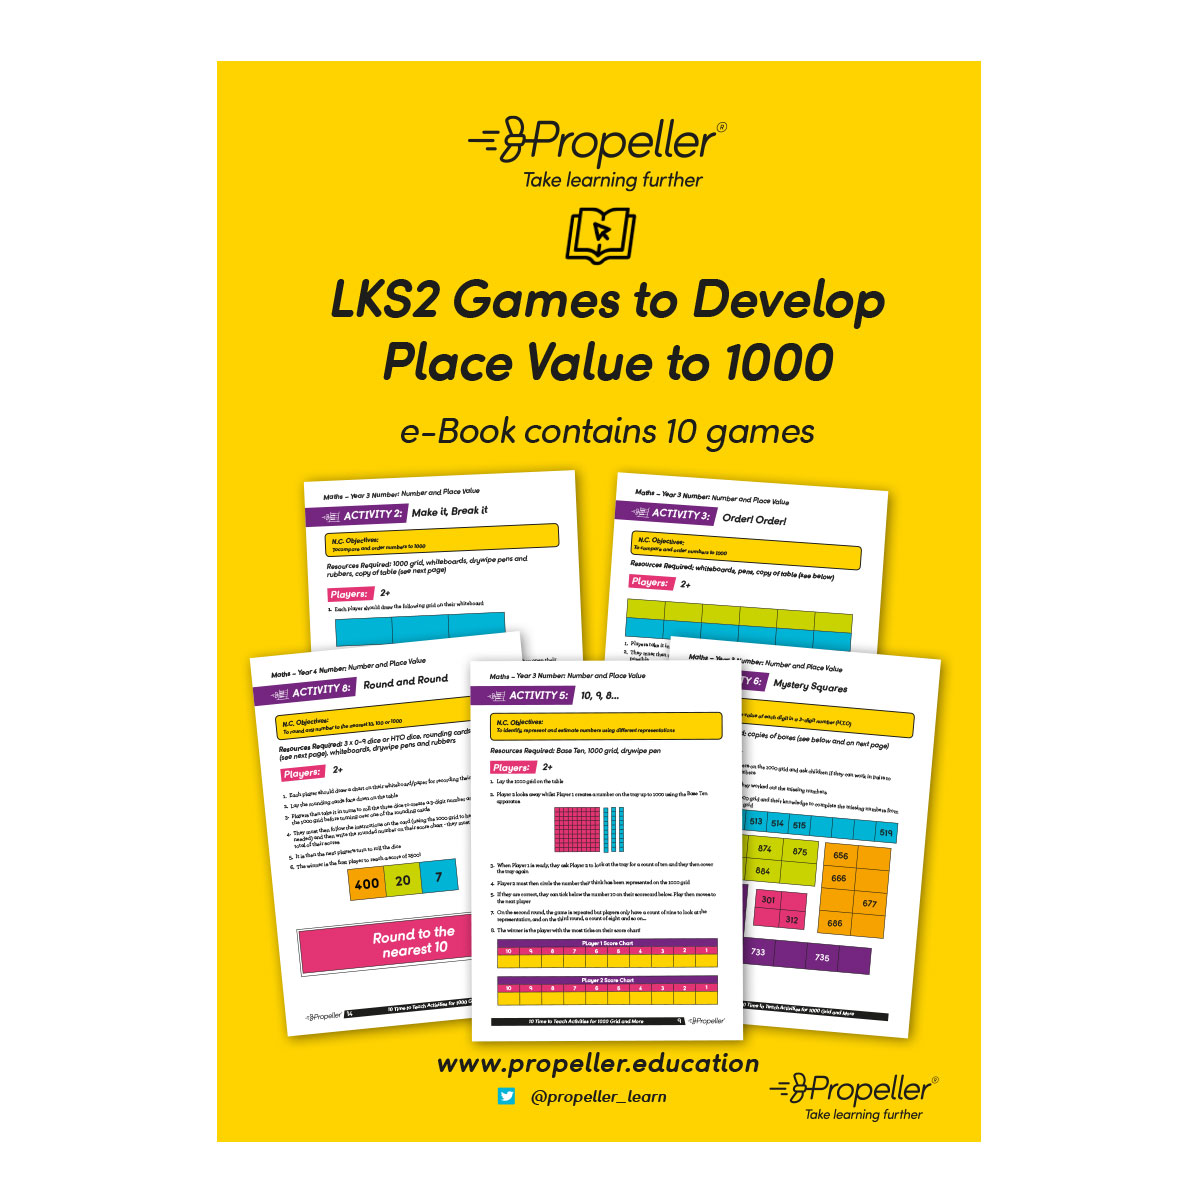 MT0132 DDGBOOK5-Games-to-Develop-Place-Value-to-1000